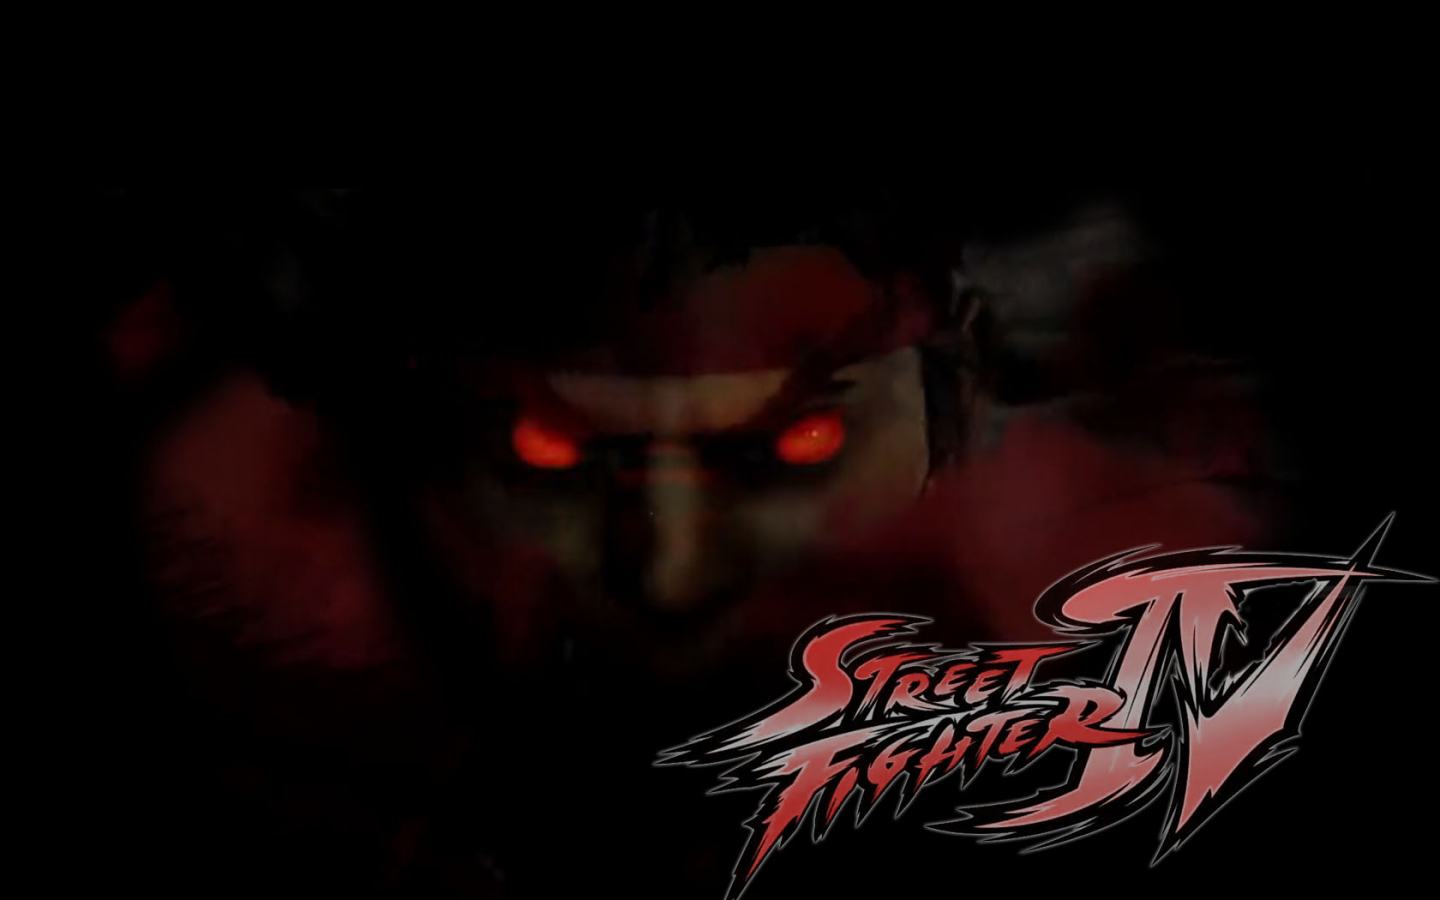 Free Download Street Fighter Evil Ryu Wallpaper Wallpapers55com